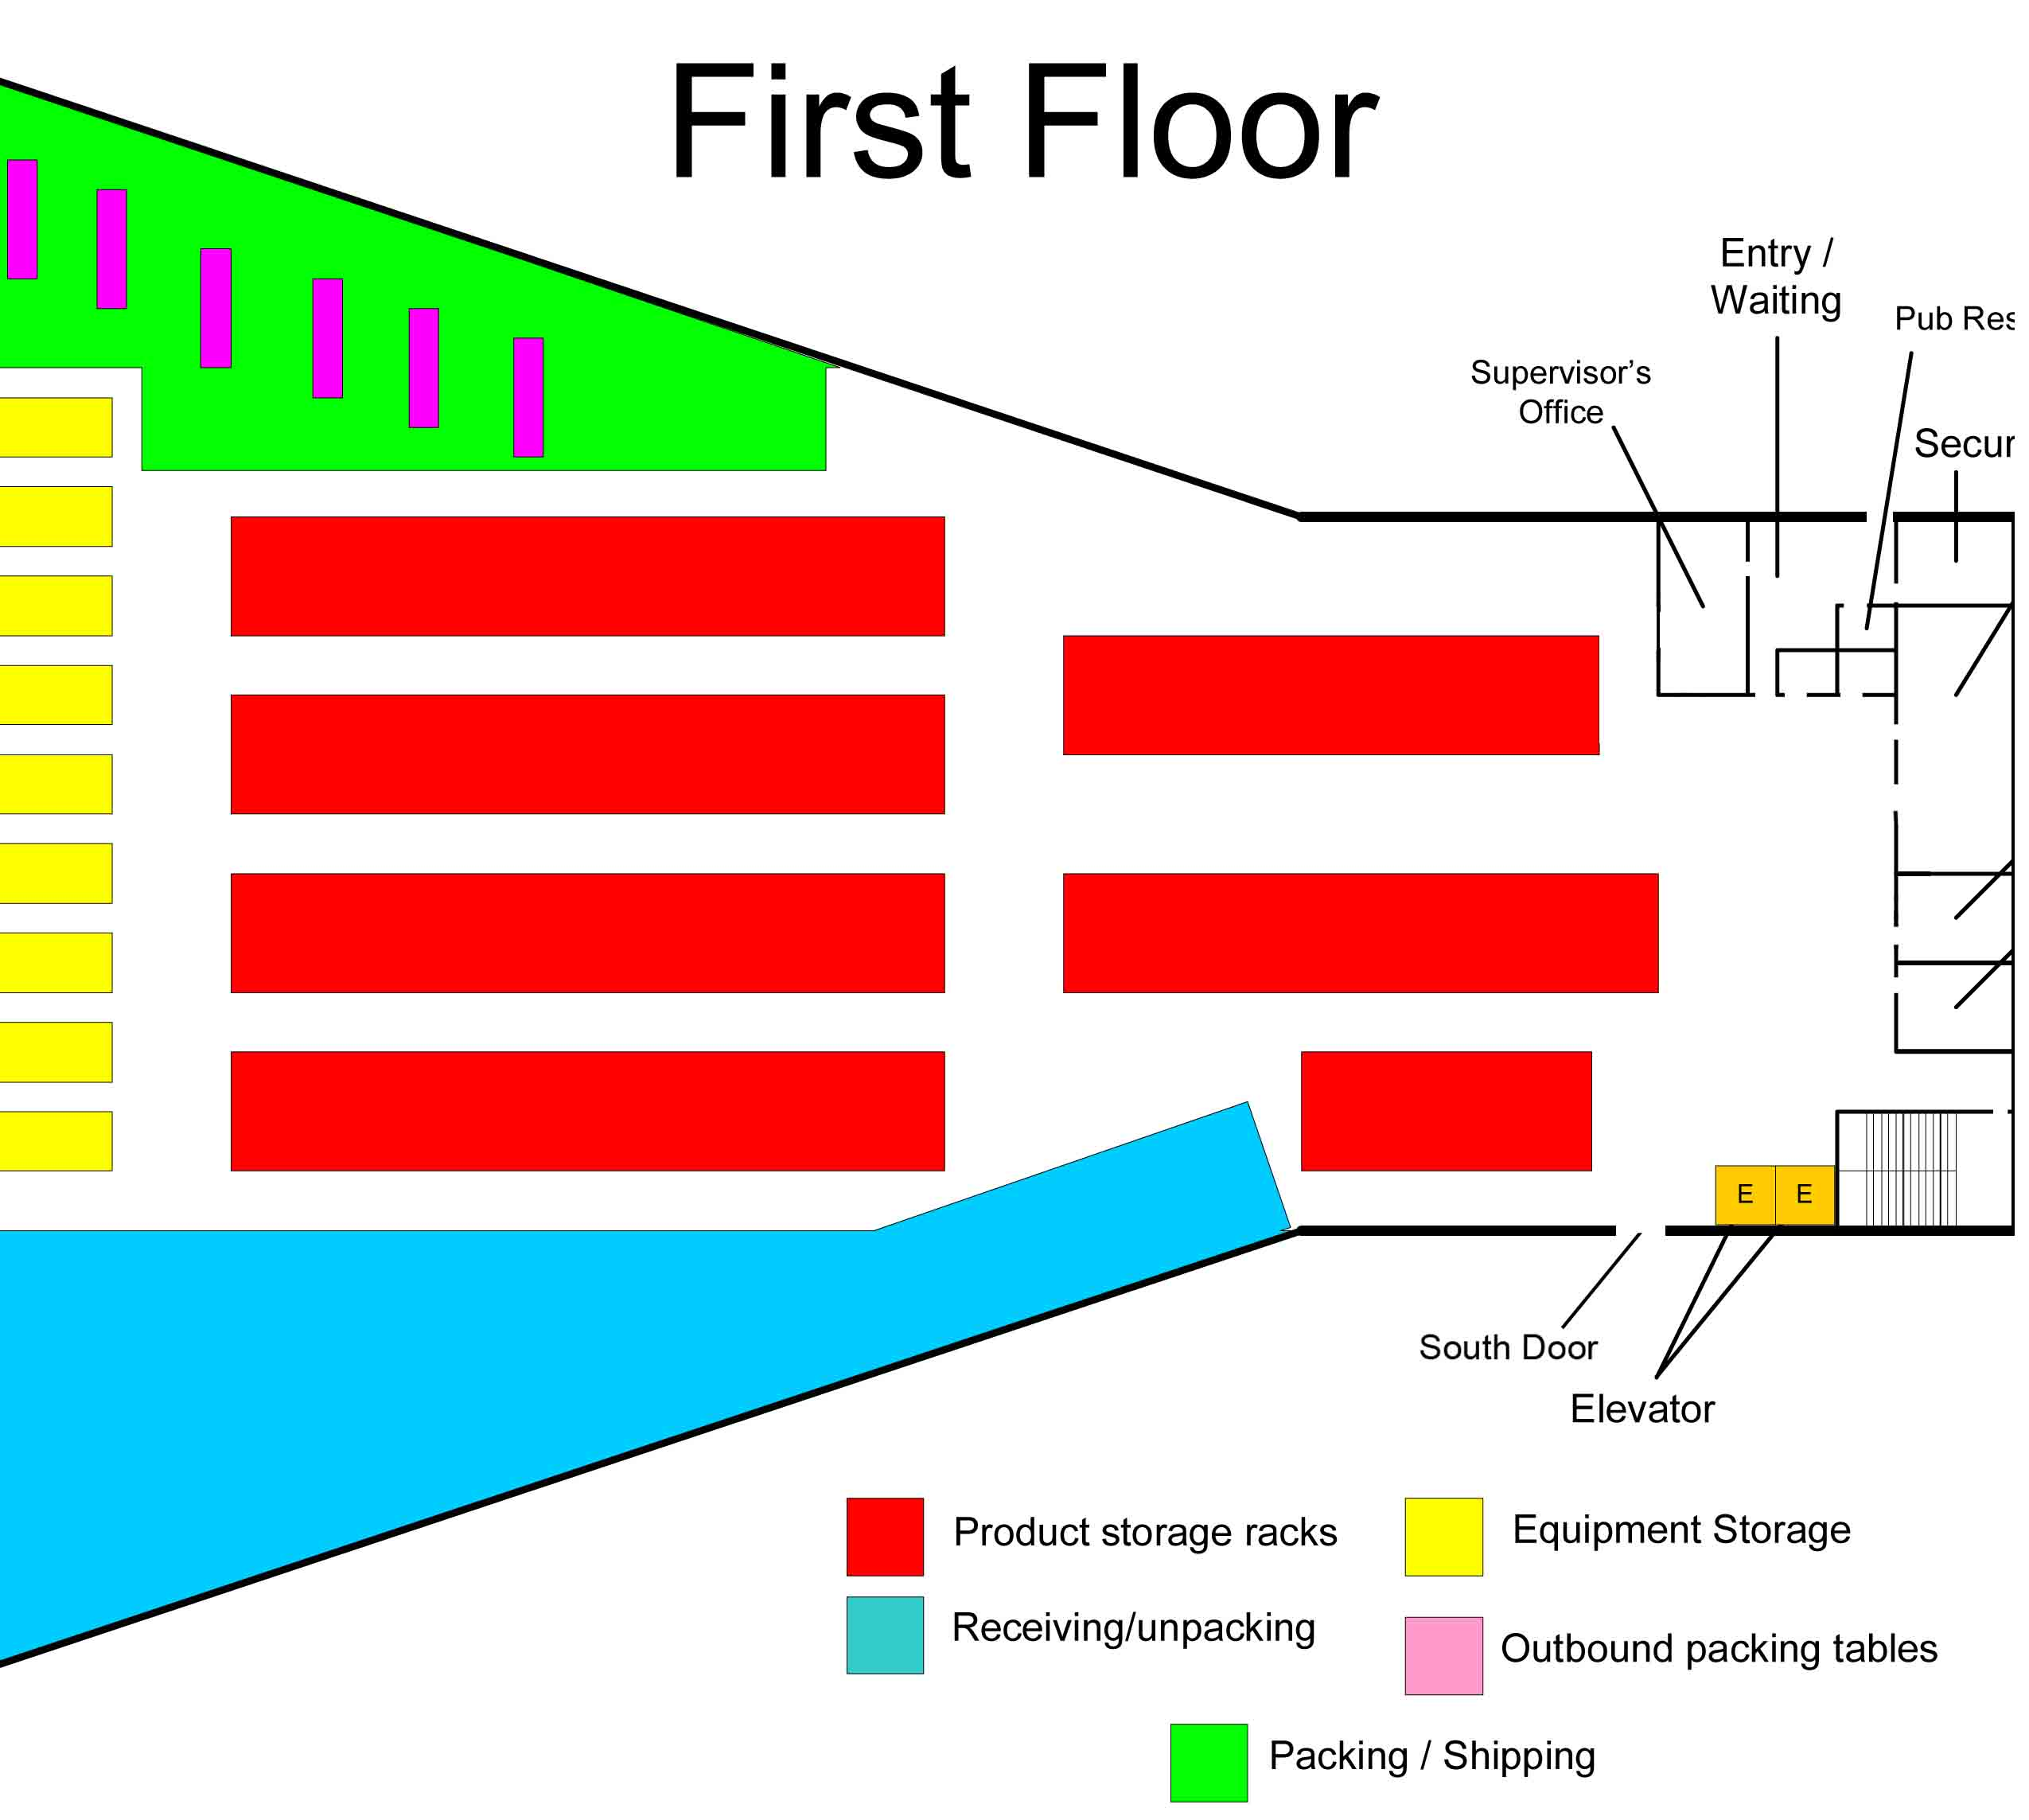 Warehouse floorplan